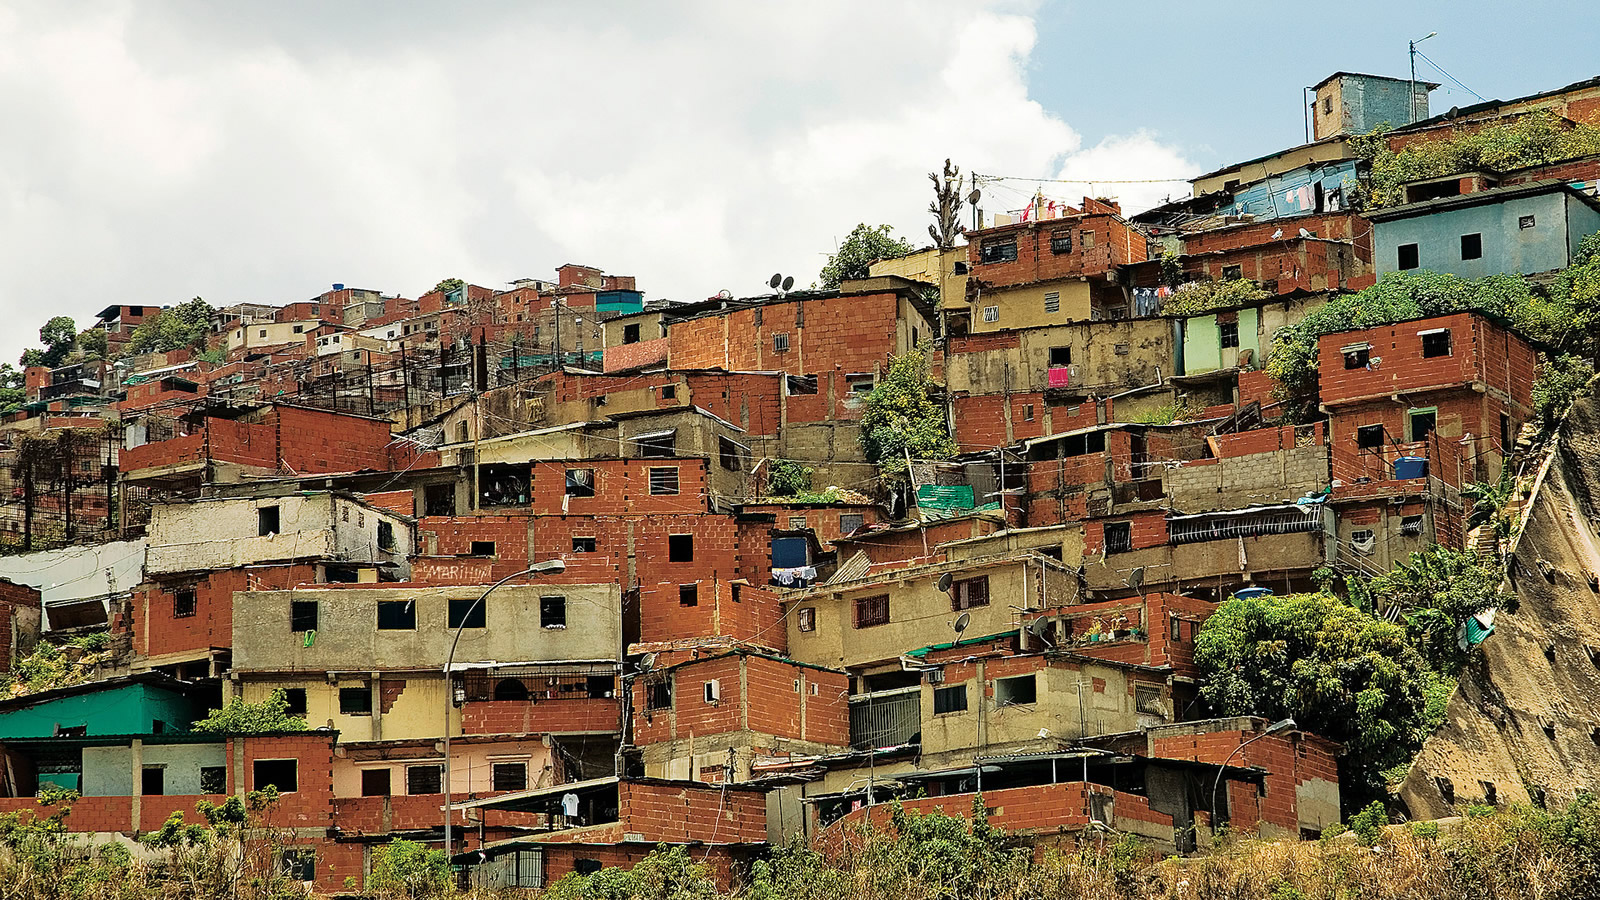 Hillside Shantytown in Venezuela